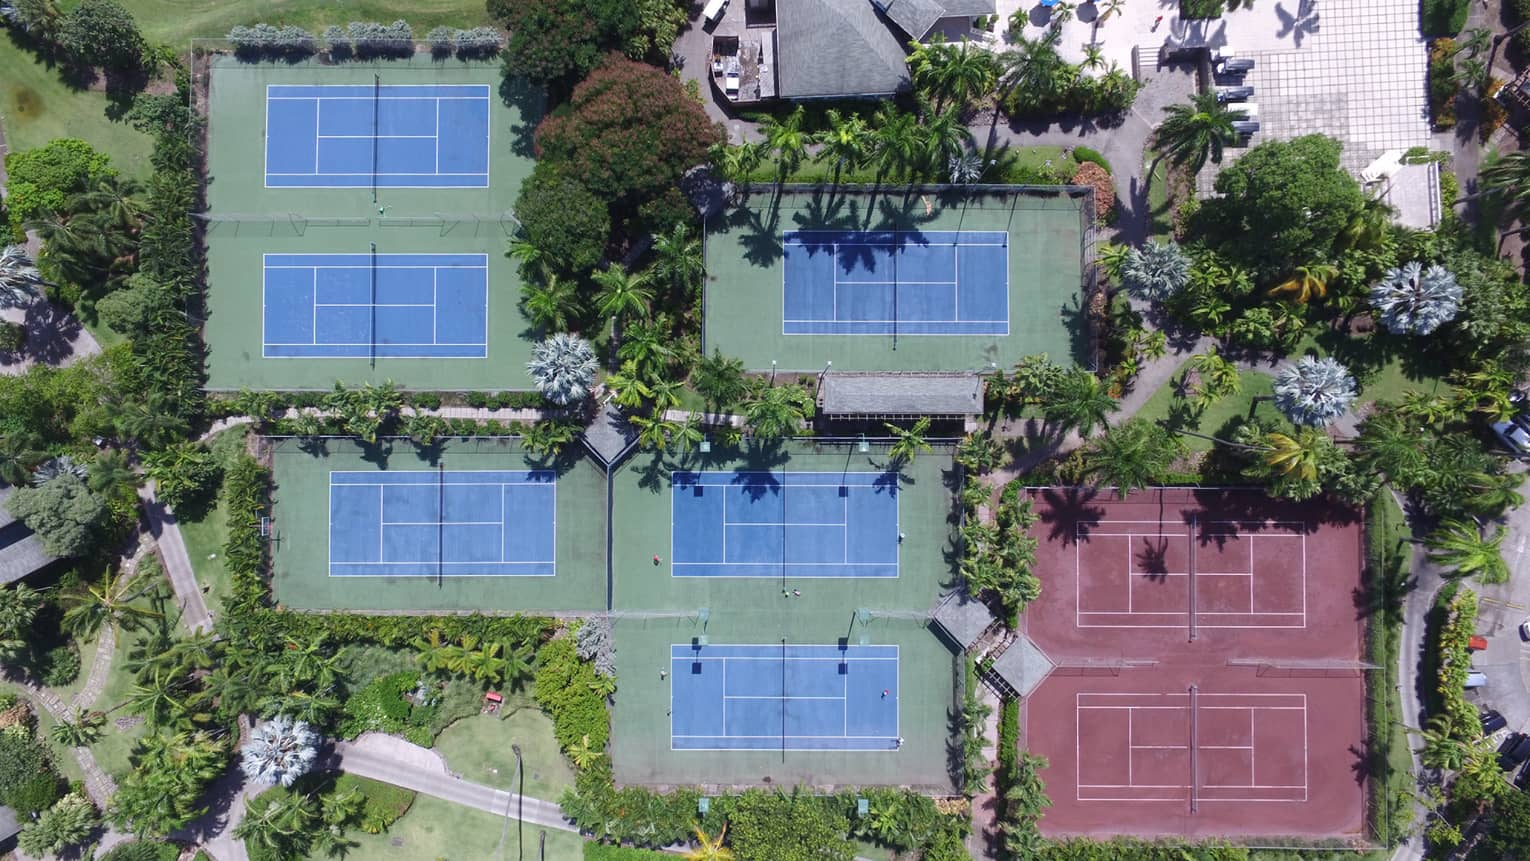 Aerial view of eight tennis courts surrounded by trees